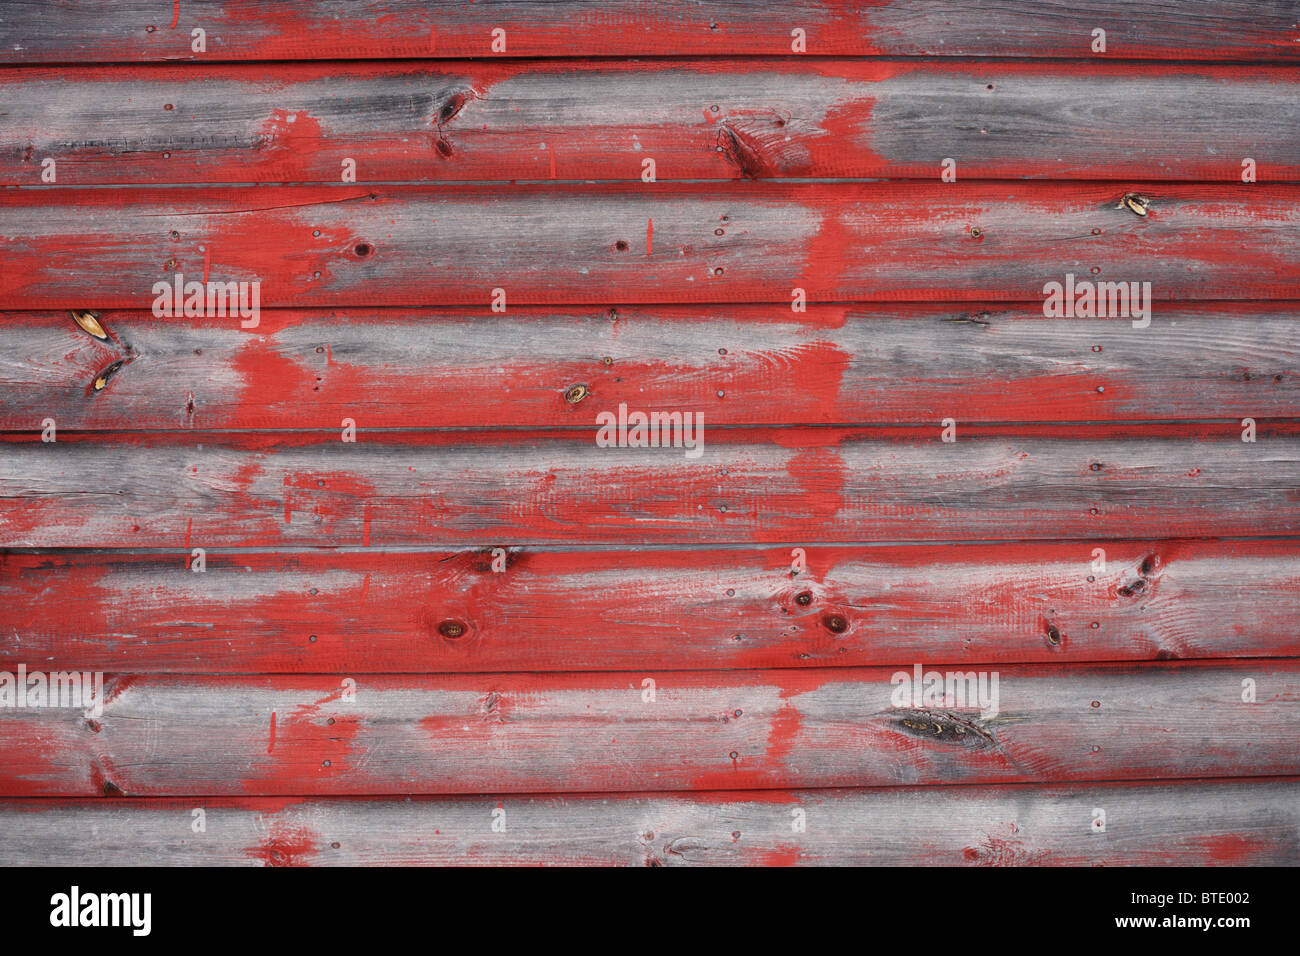 Some old wood siding with splotches of red paint. - Stock Image